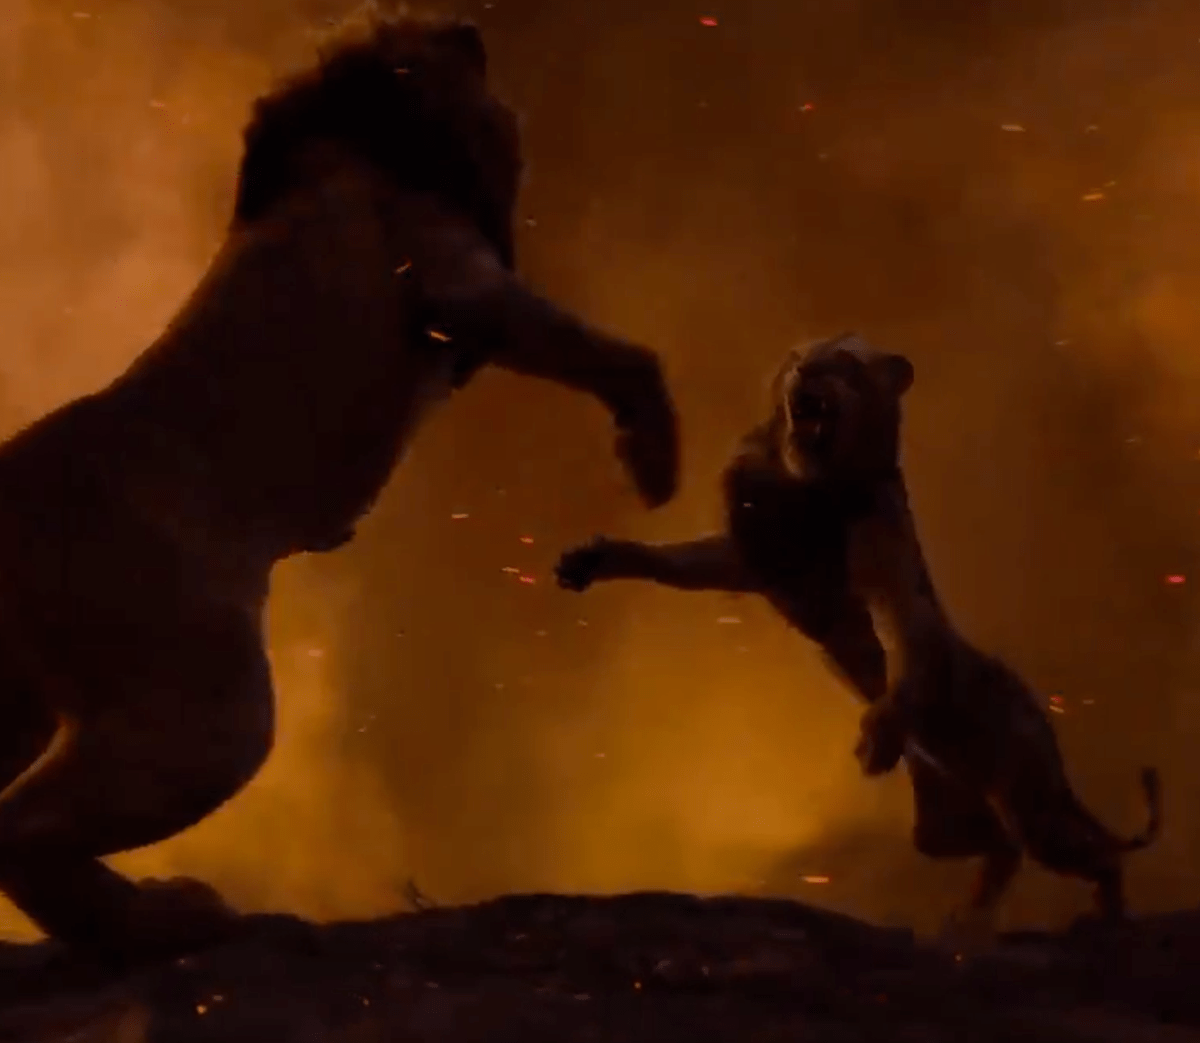 New Lion King movie trailer teases epic showdown between Simba and Scar